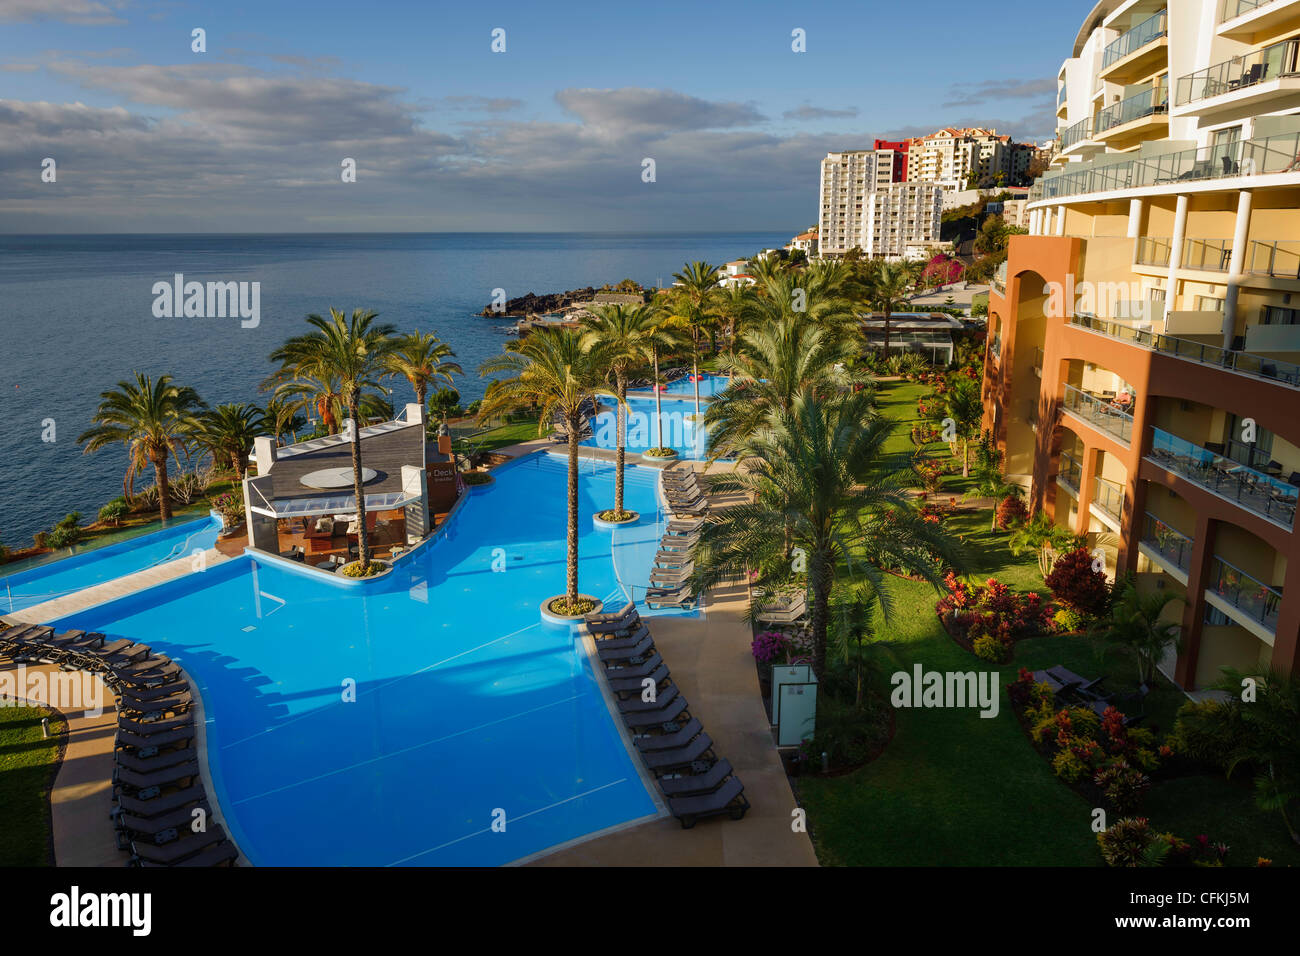 View from a balcony Pestana Promenade Hotel Funchal Madeira Portugal - Stock Image